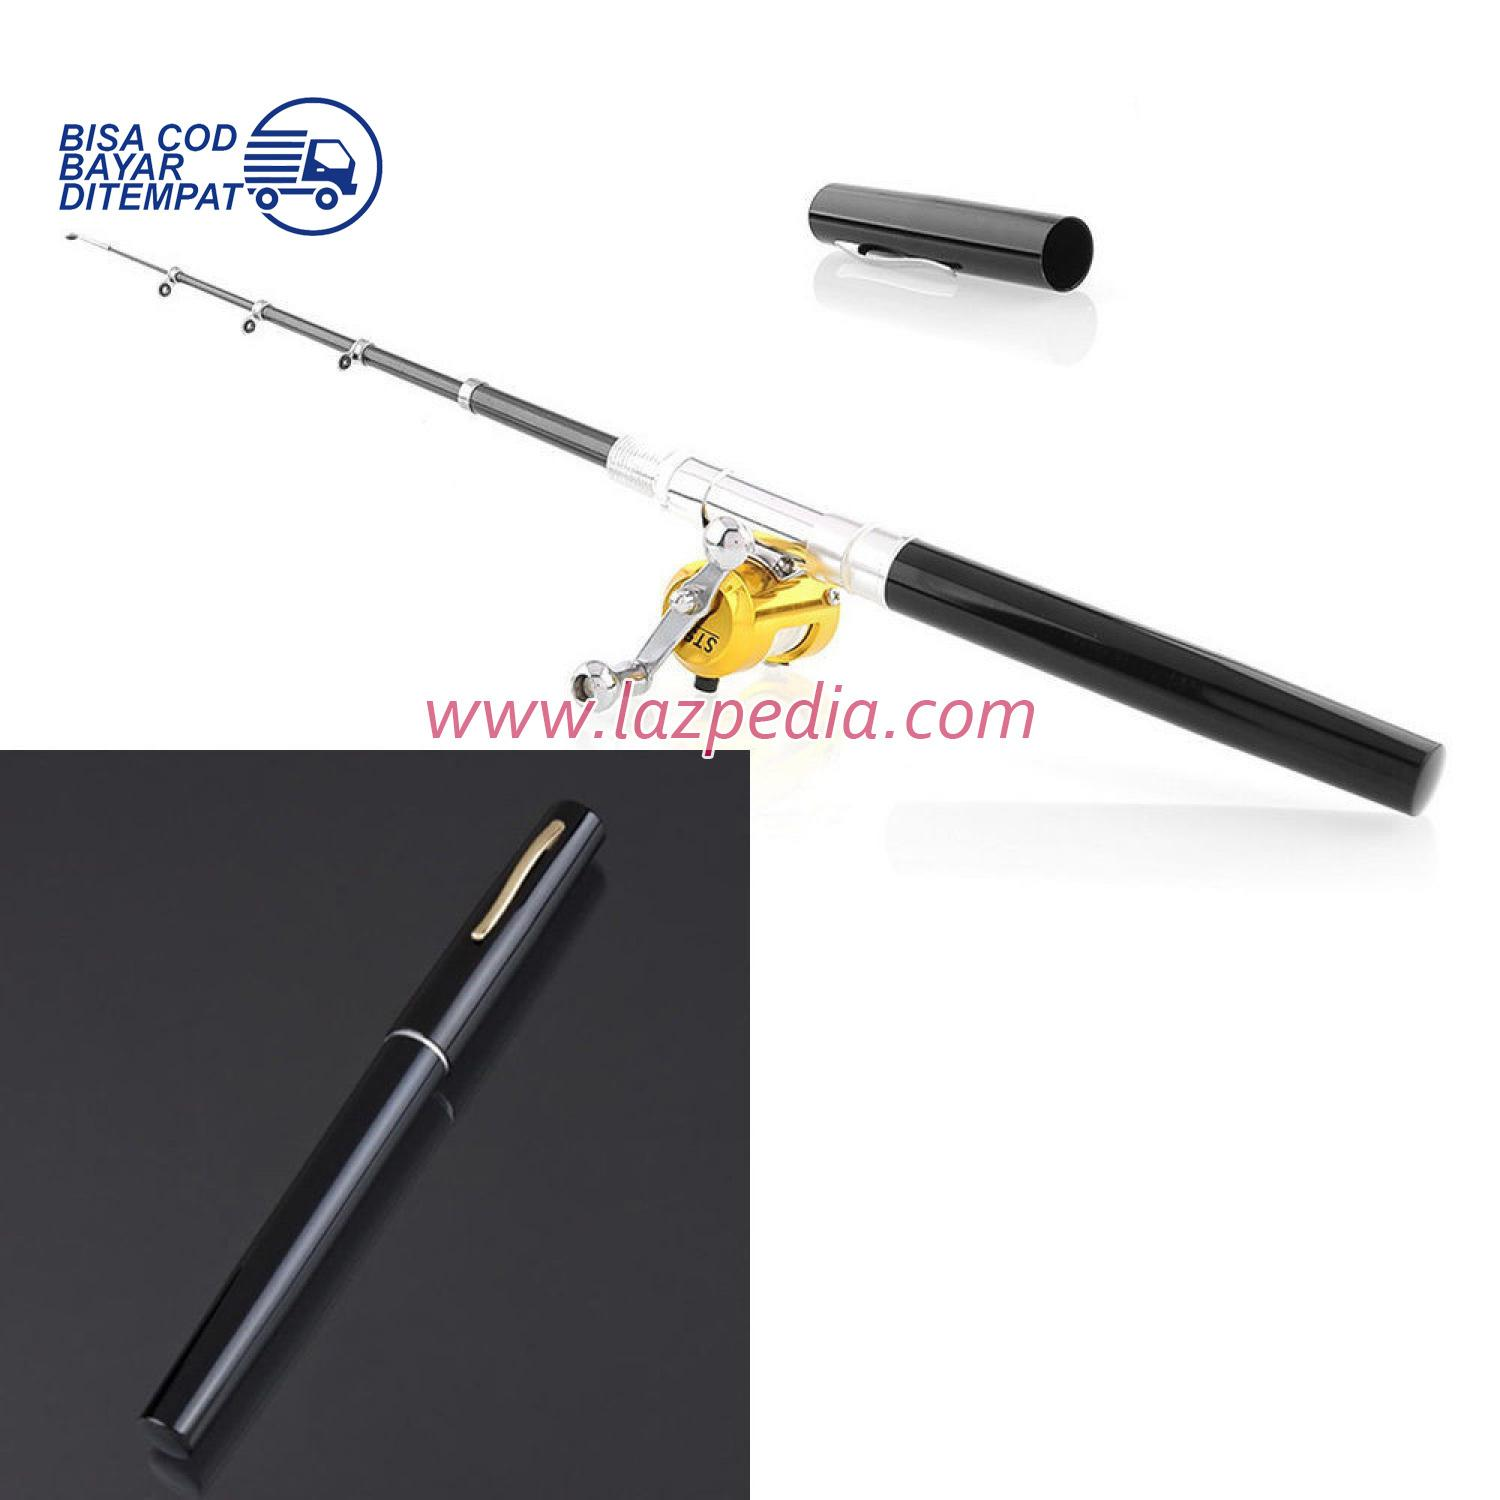 Laz COD - Mini Portable Extreme Pen Fishing Rod Length 1 M / Pancing Pena / Hitam - Lazpedia